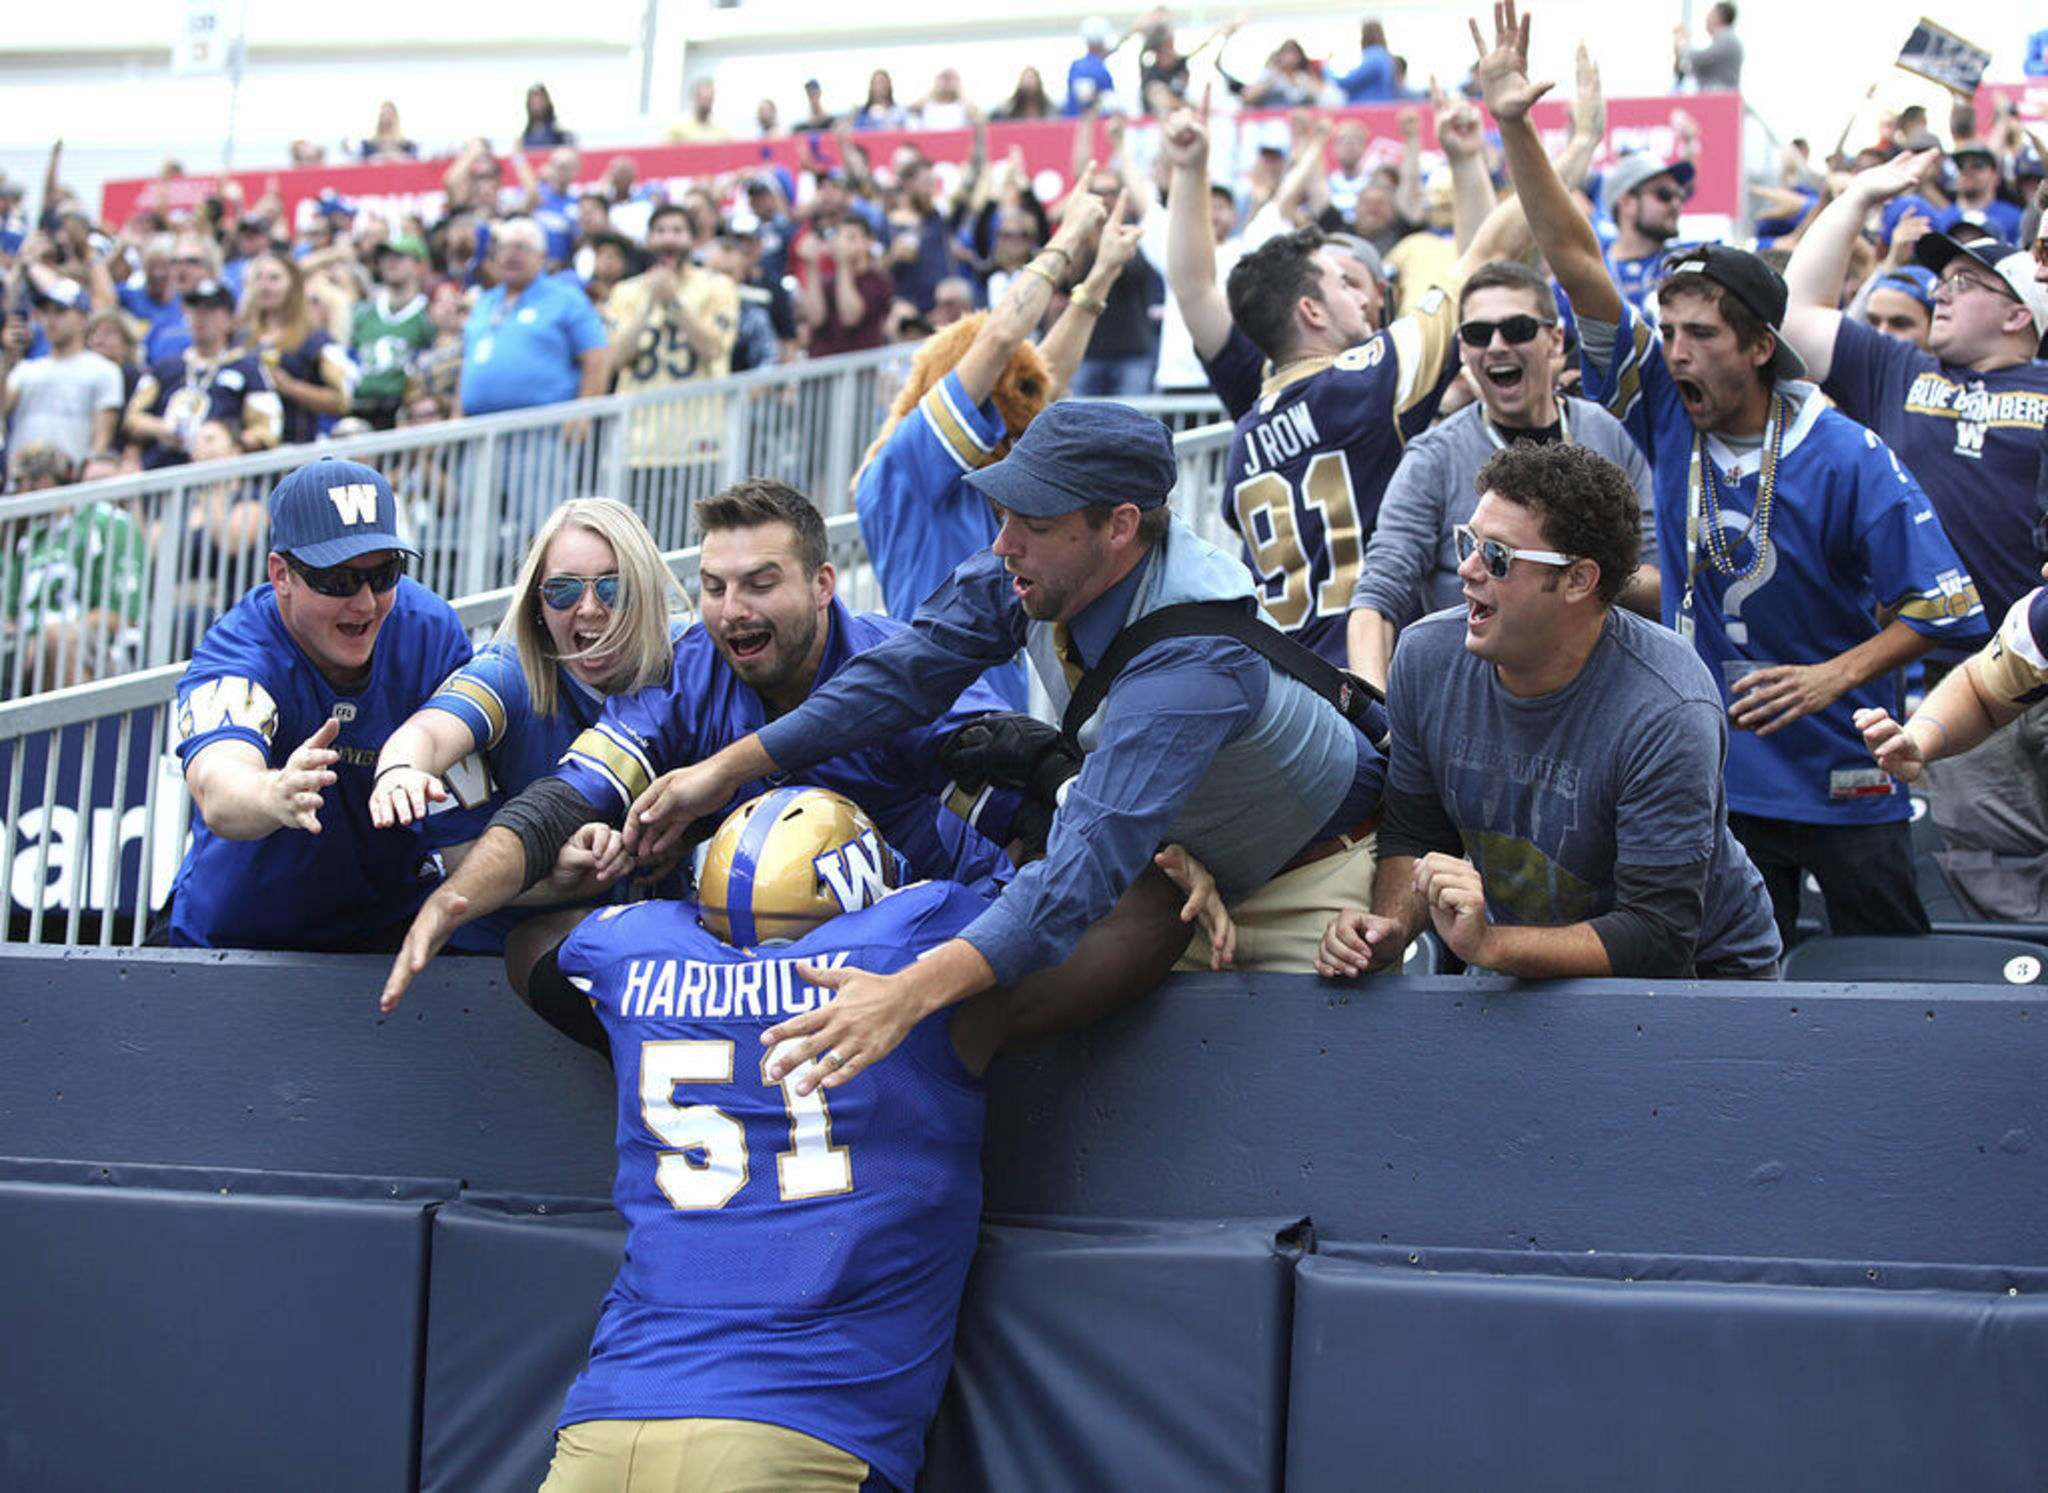 RUTH BONNEVILLE / WINNIPEG FREE PRESS FILES</p><p>Winnipeg Blue Bombers offensive lineman Jermarcus Hardrick gets some love from Bomber fans after the team scored a touchdown. It's safe to say the Bombers players are thinking about getting back to game action since the CFL released it's schedule for the 2021 season, Friday. </p>